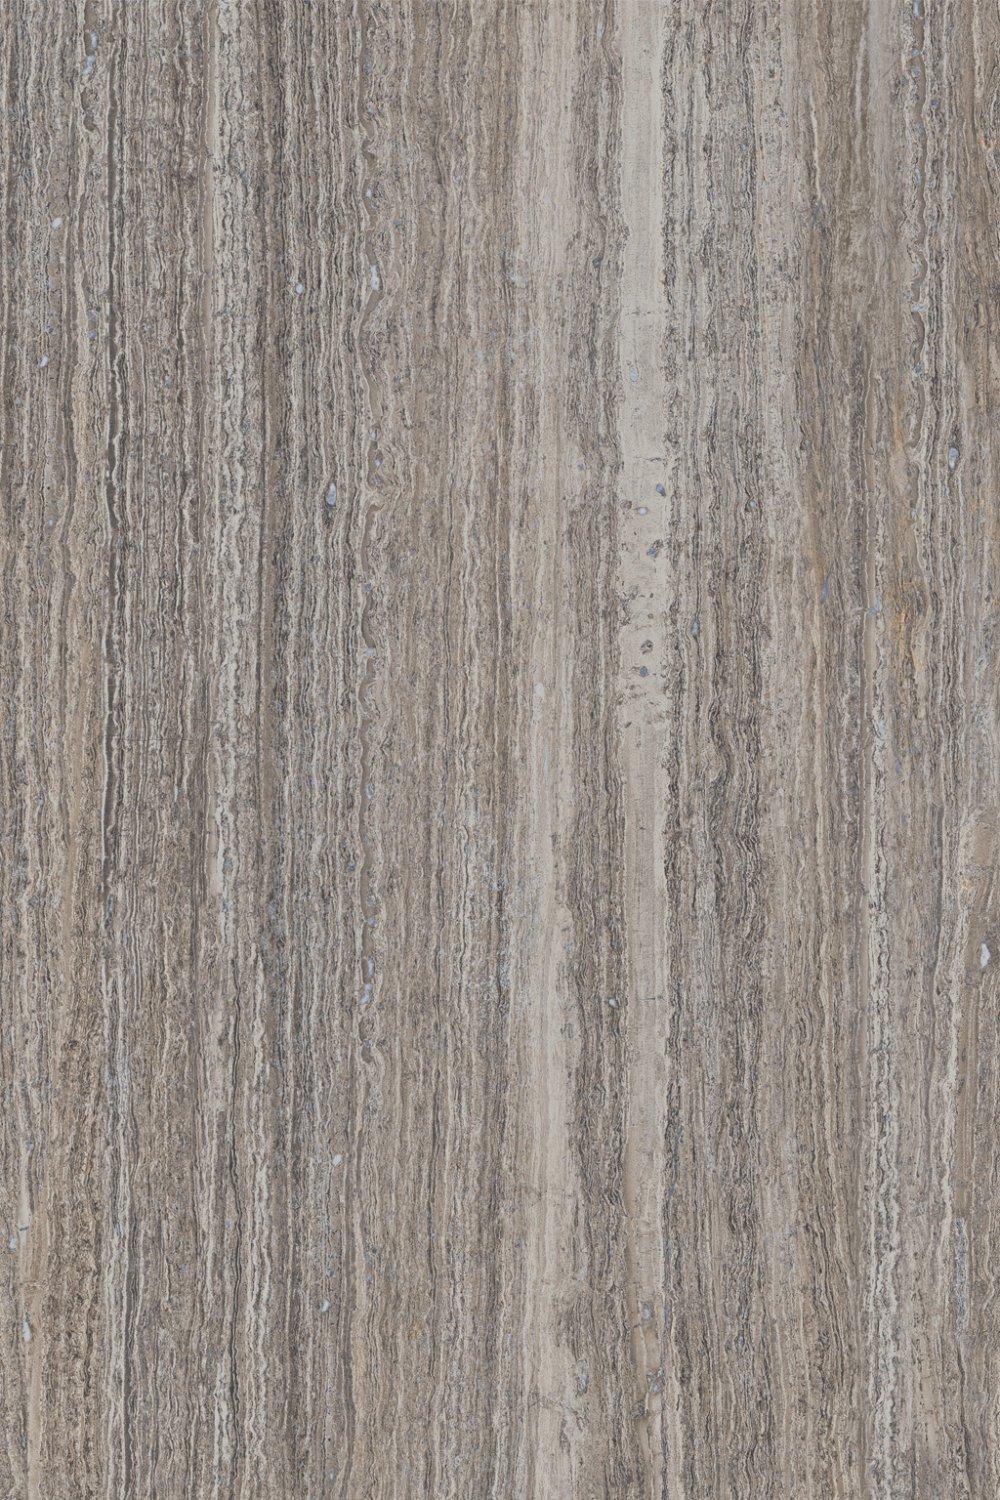 Interceramic Tile Thassos Travertine 16 X 24 Silver